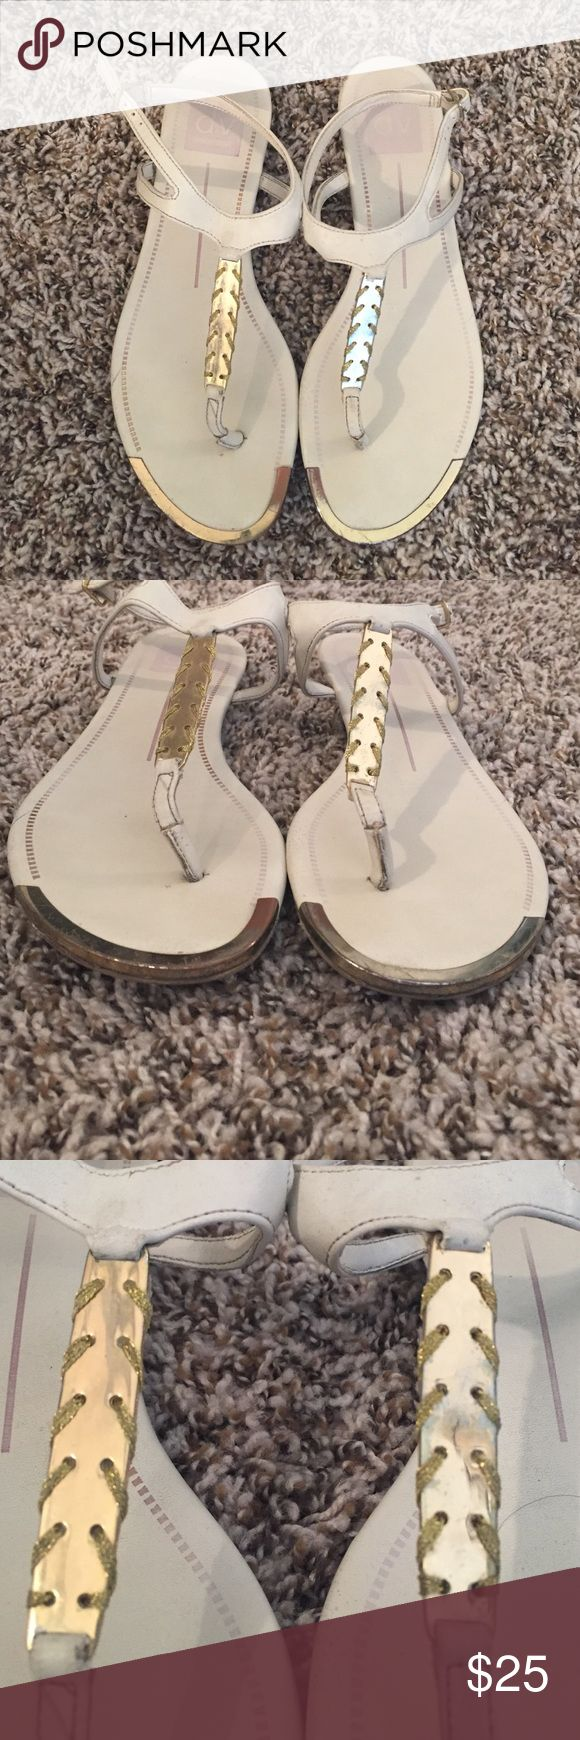 Dolce vita white and gold flat sandals Dolce vita white and gold sandals. Good condition. Dolce Vita Shoes Sandals